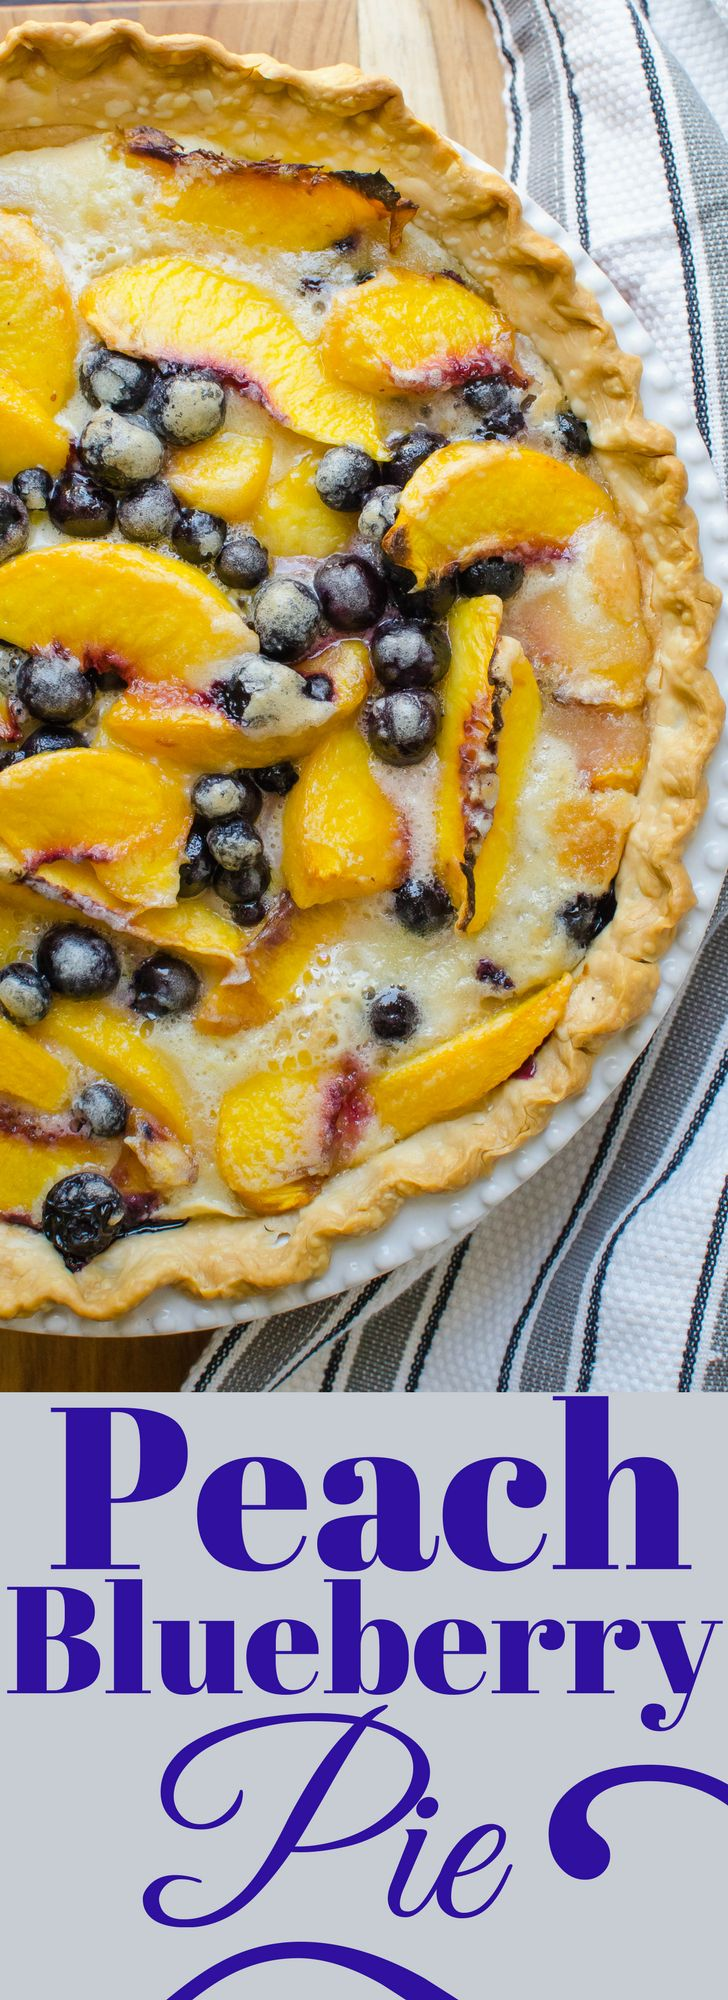 This is grandma's recipe for the easiest homemade Peach Blueberry Pie. Store-bought crust, fresh fruit and a custard filling makes this a family favorite!